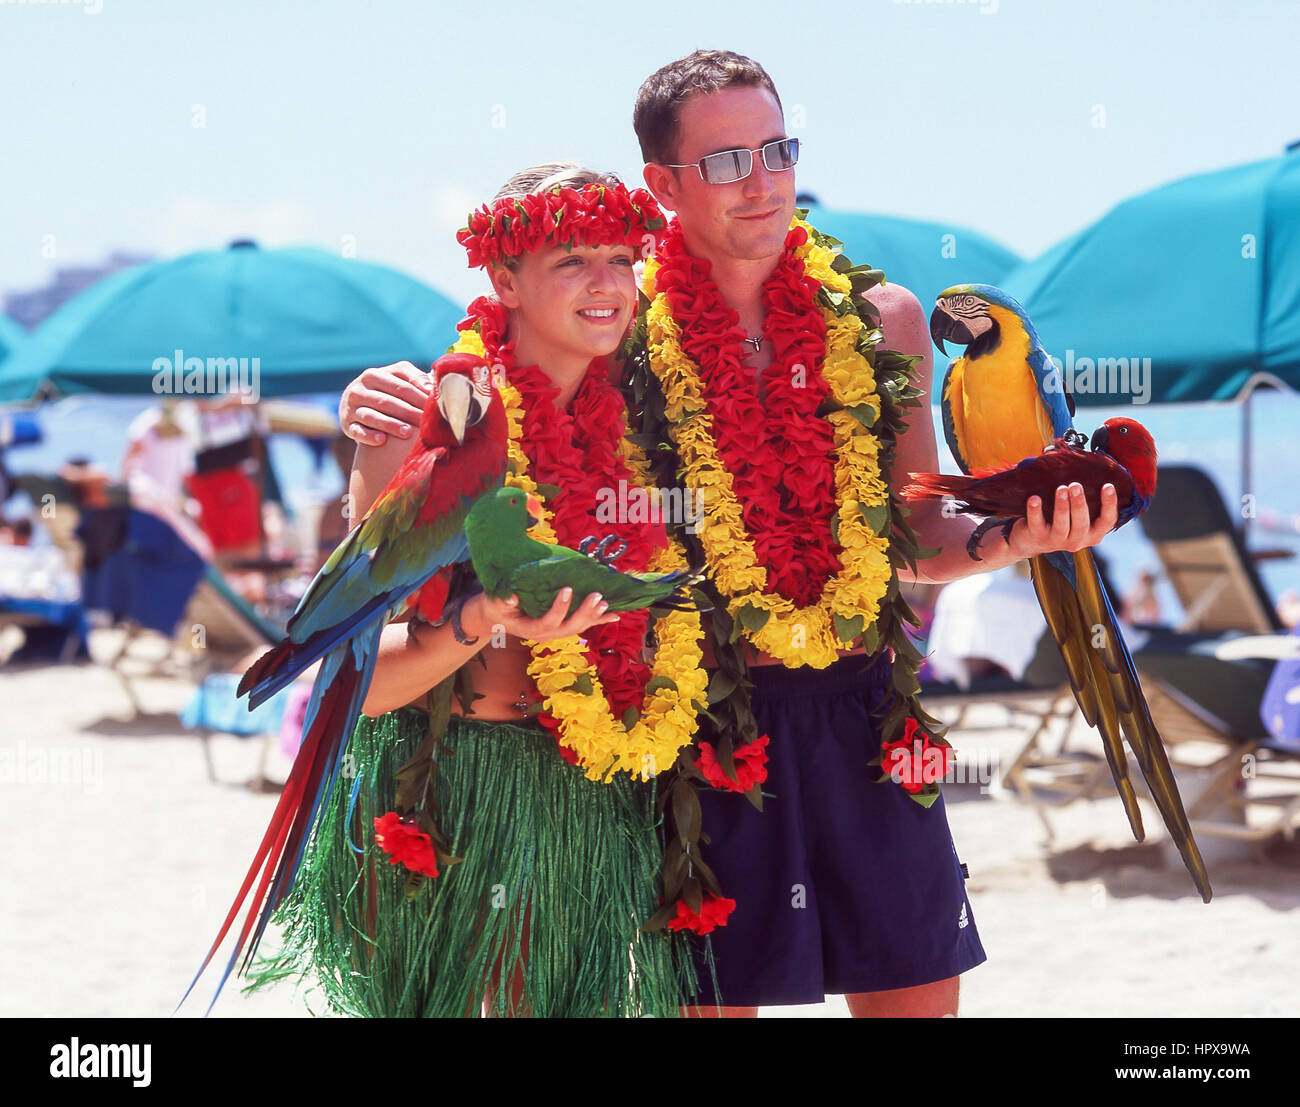 Couple posing for photographs with Macaw parrots, Waikiki Beach, Honolulu, Oahu, Hawaii, United States of America - Stock Image